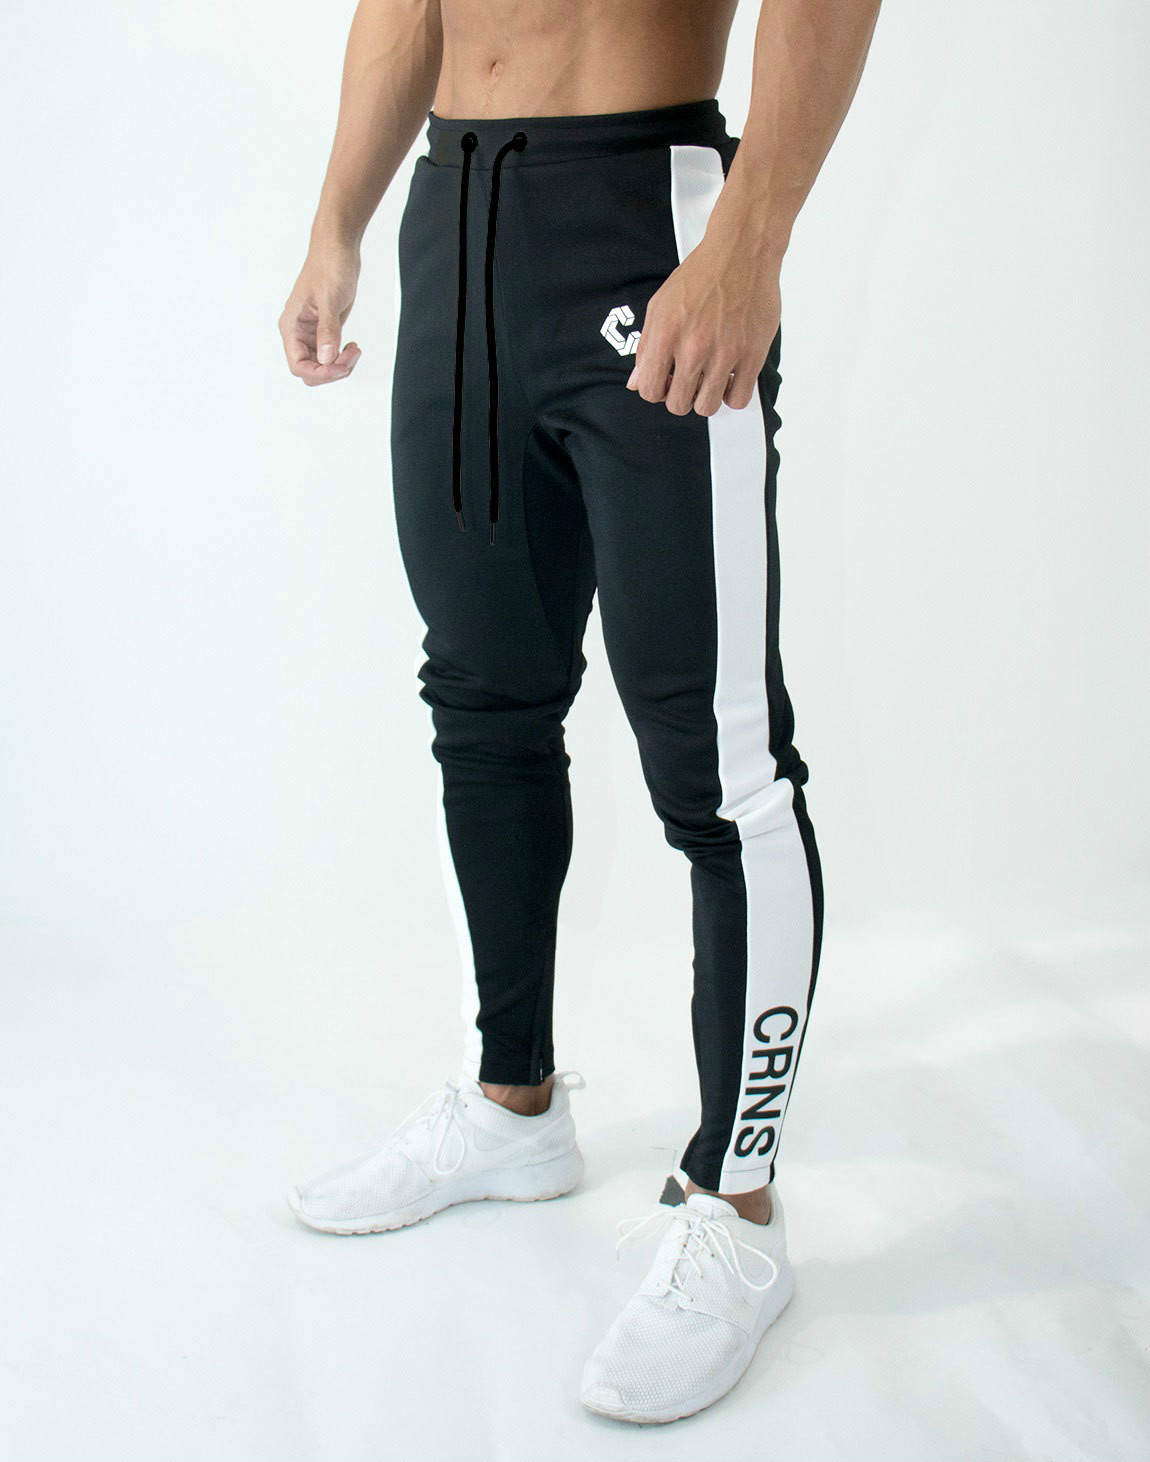 Mens Joggers Casual Pants Fitness Men Sportswear Bottoms Skinny Sweatpants Trousers Fashion Gyms Jogger Track Pants